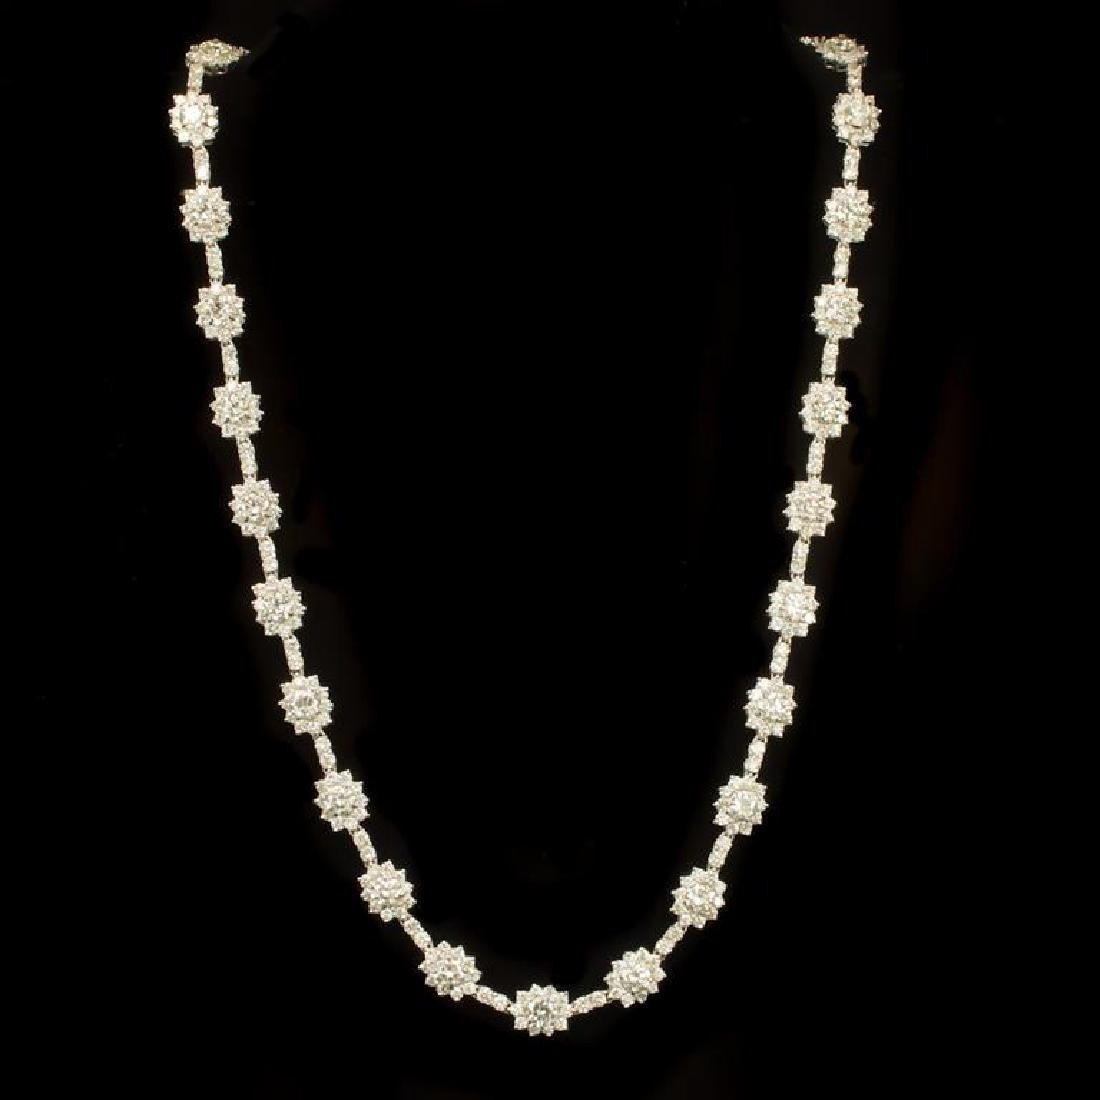 18K Gold 18.22ct Diamond Necklace - 2